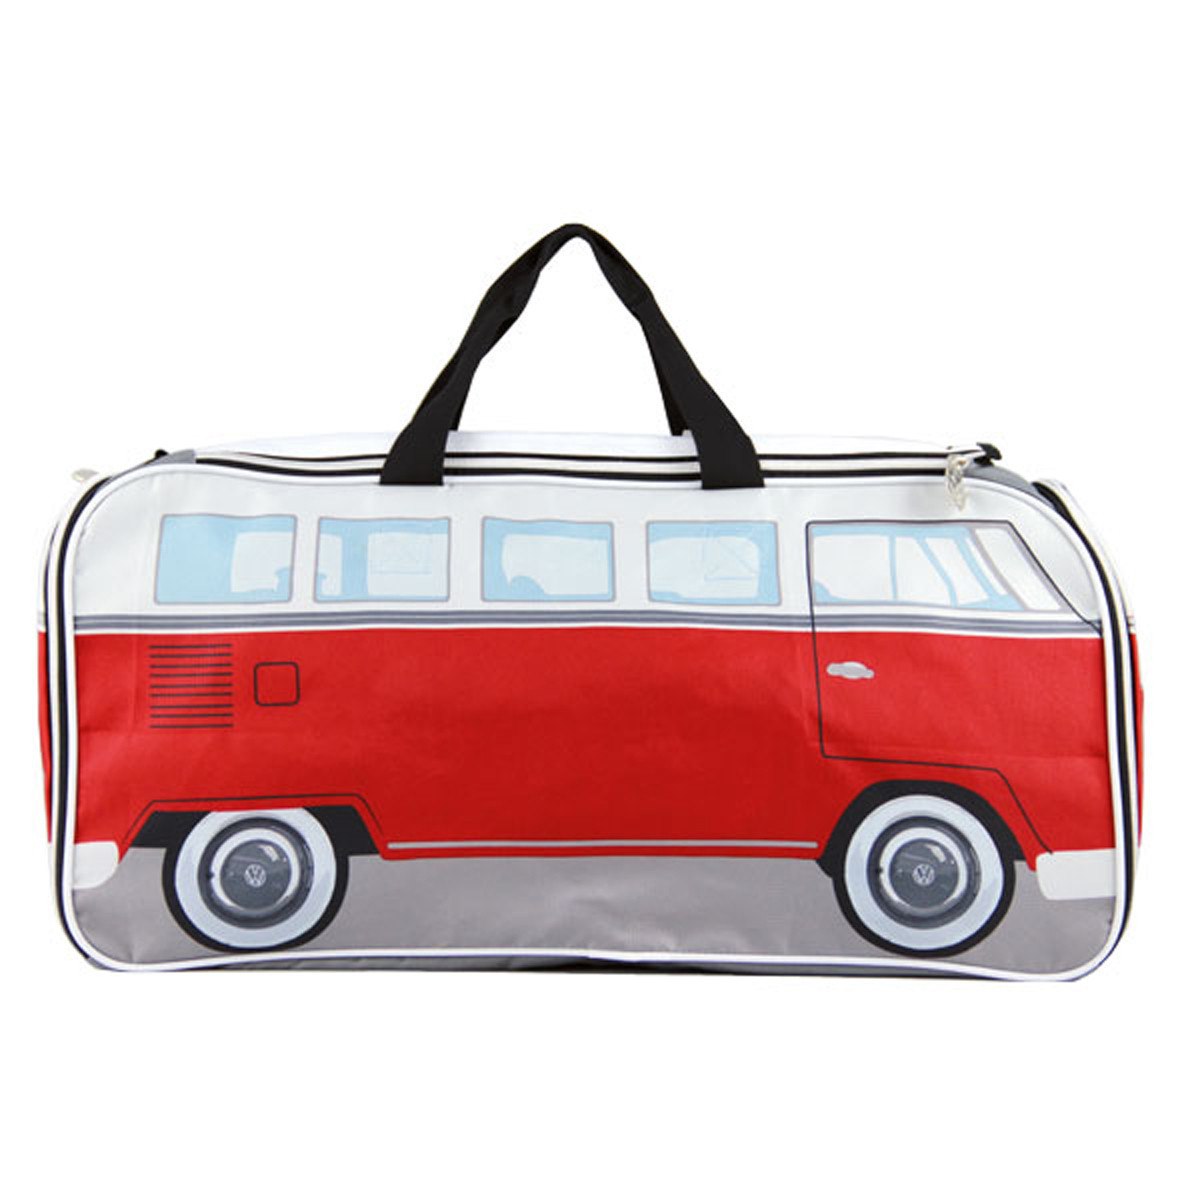 VW Sports Gym Travel Bag-Red by